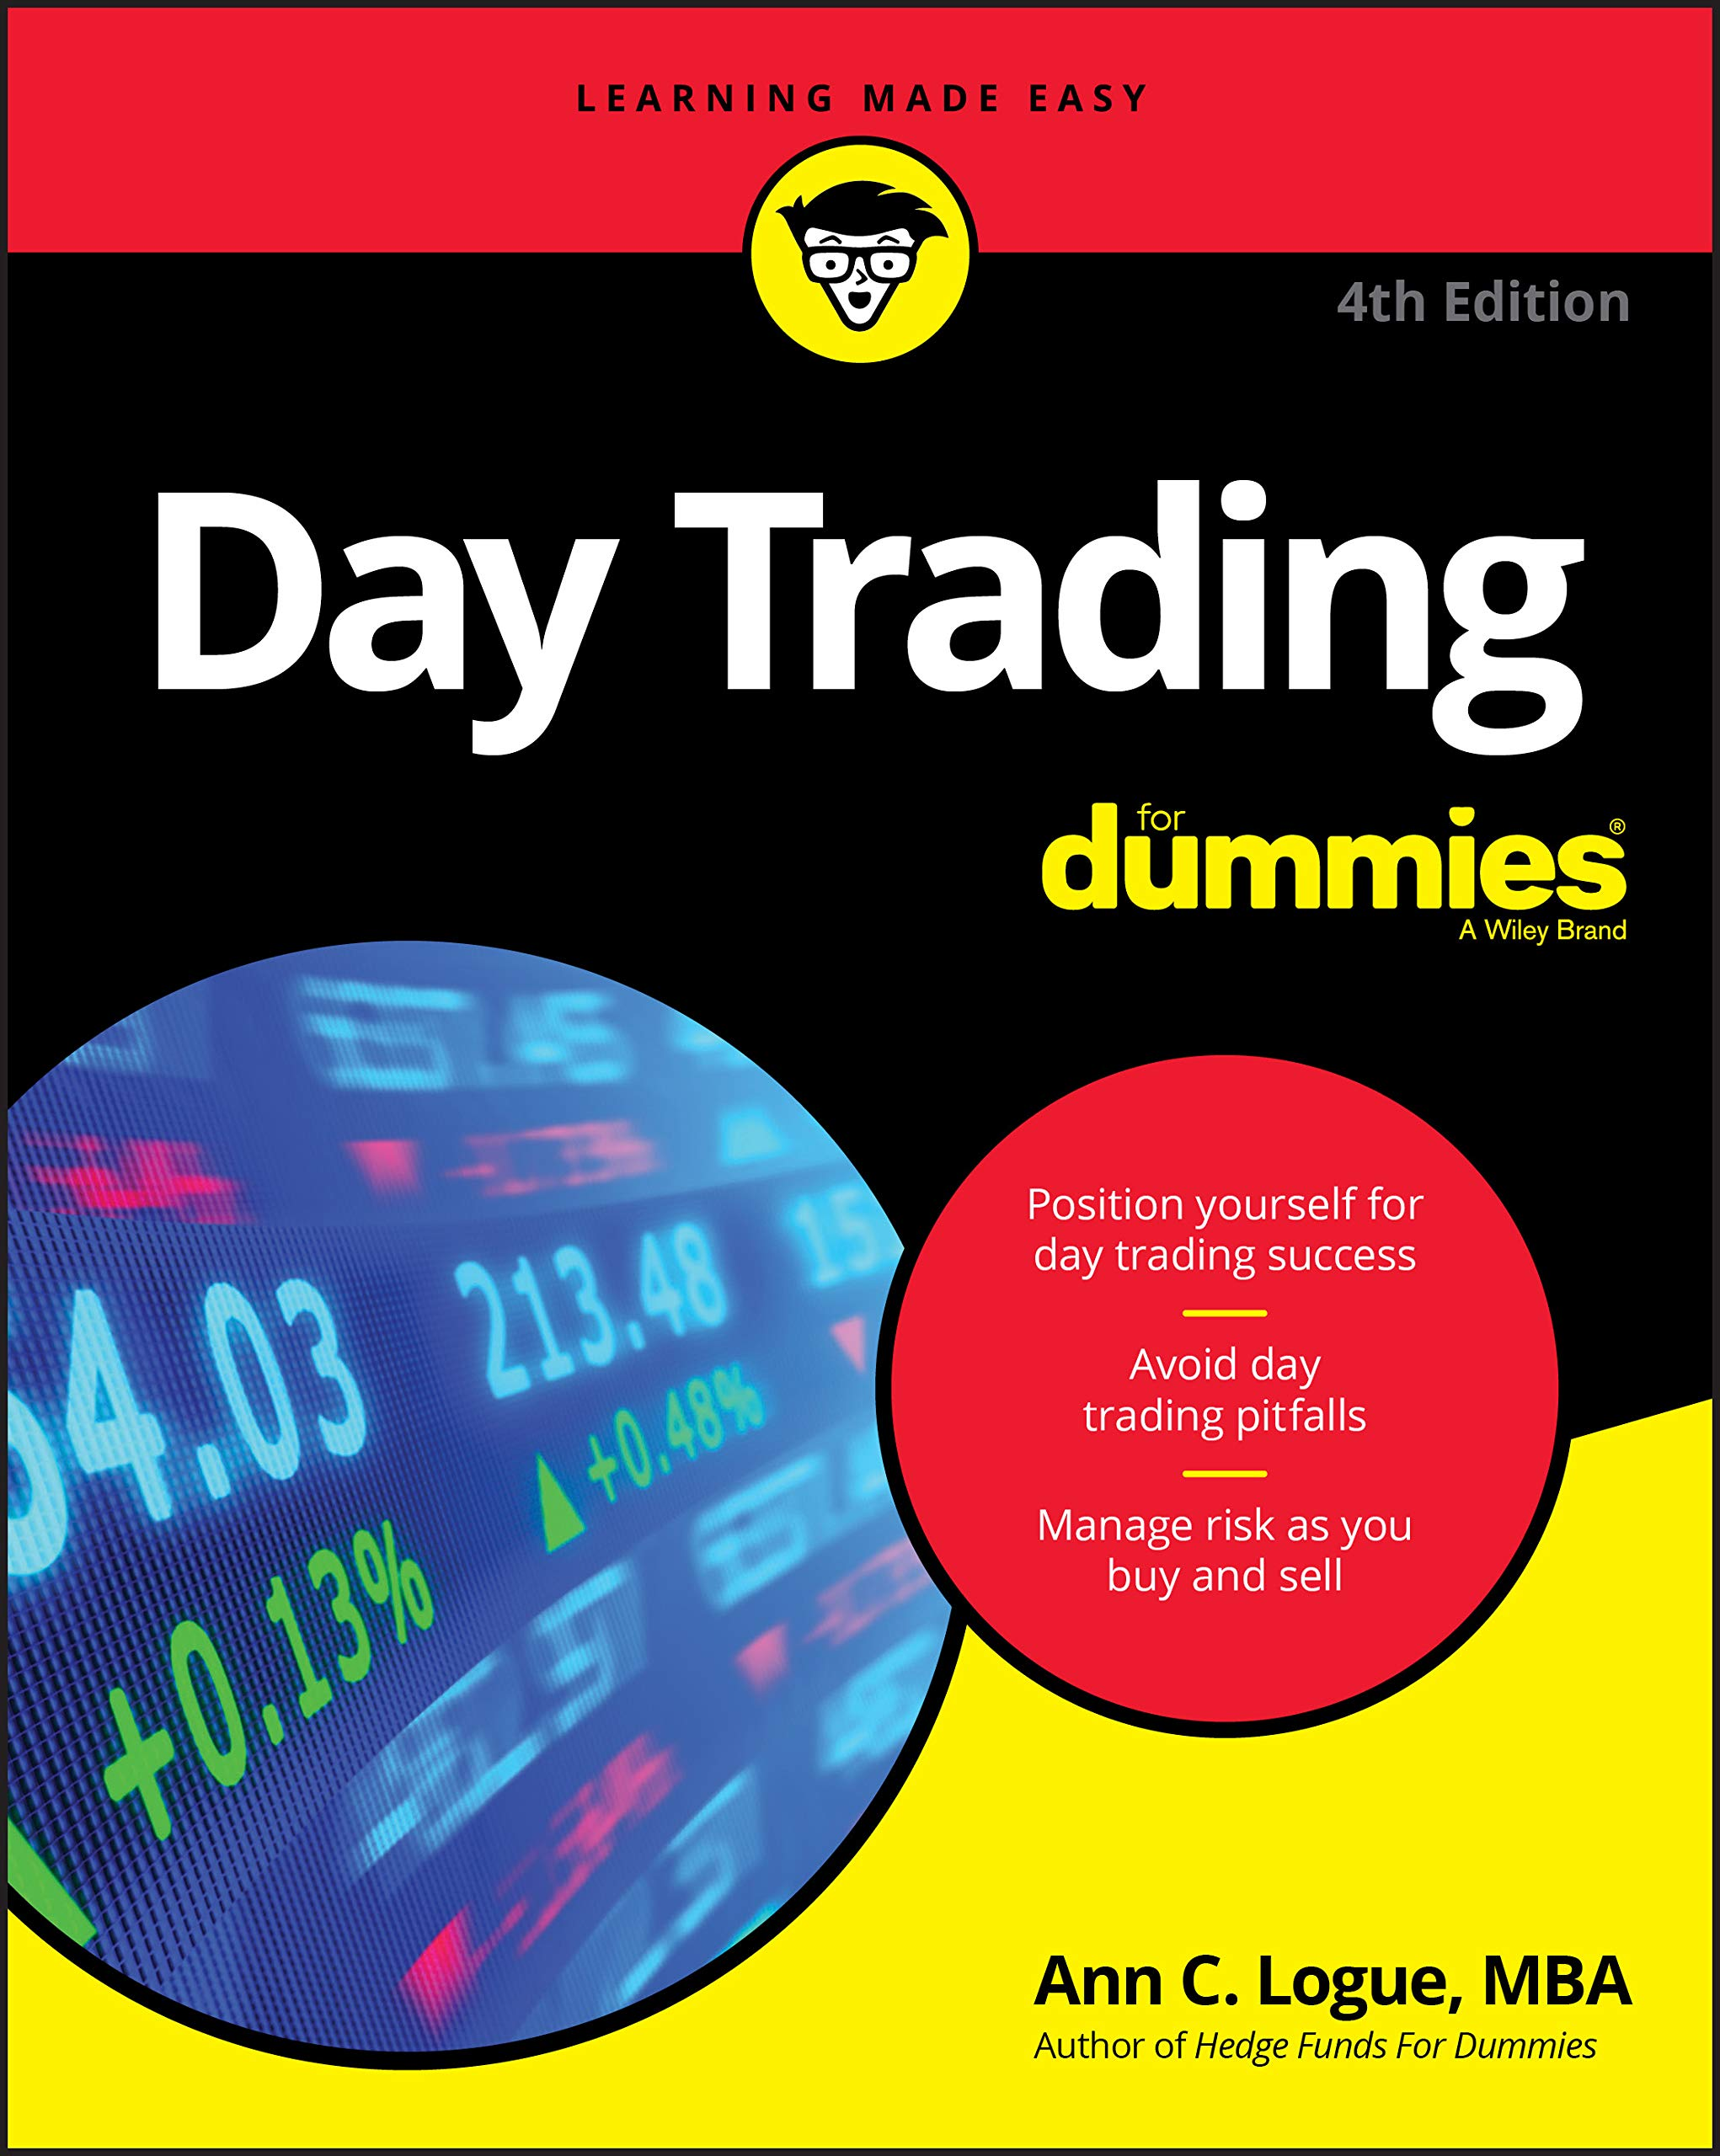 Day Trading For Dummies Pdf 4th Edition